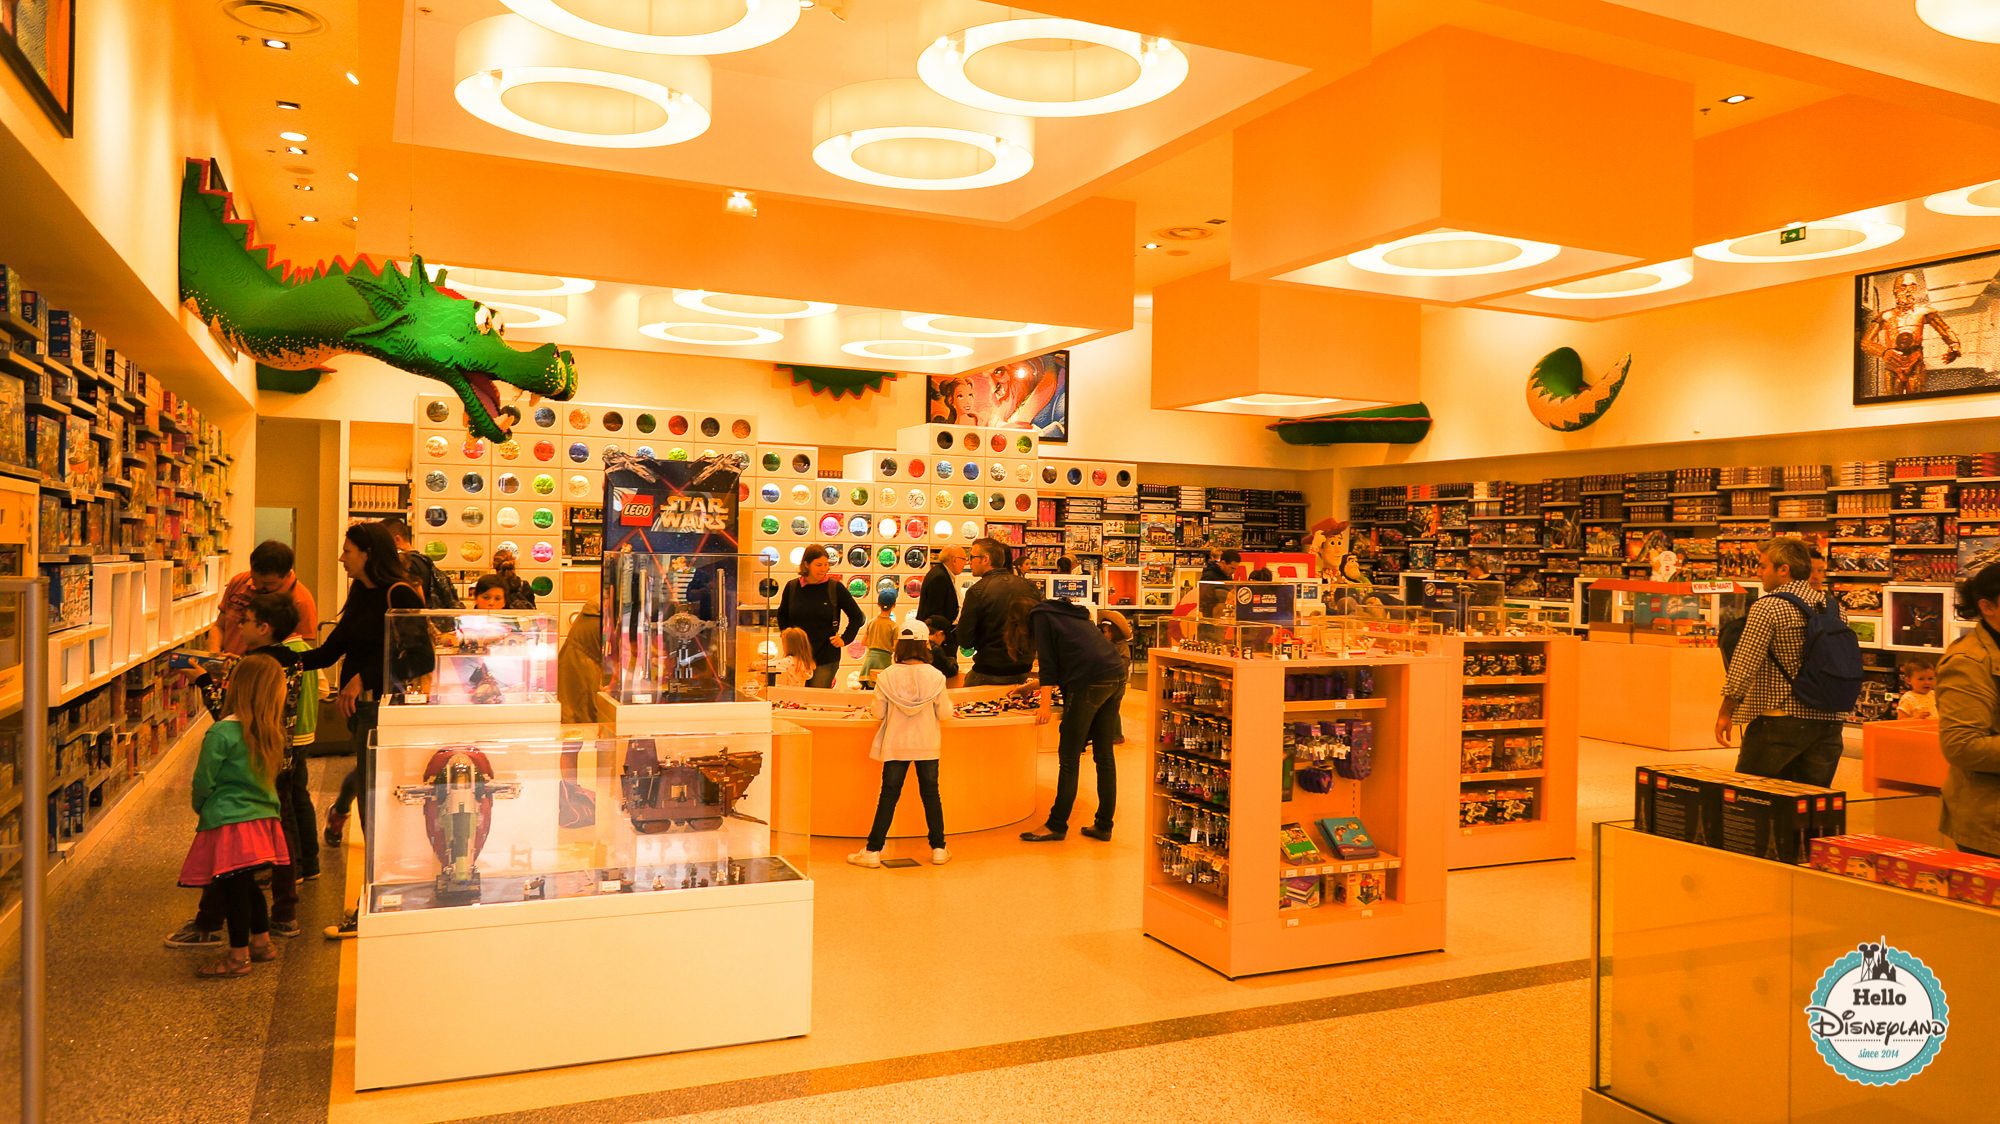 lego-store-boutique-disneyland-paris-1.jpg